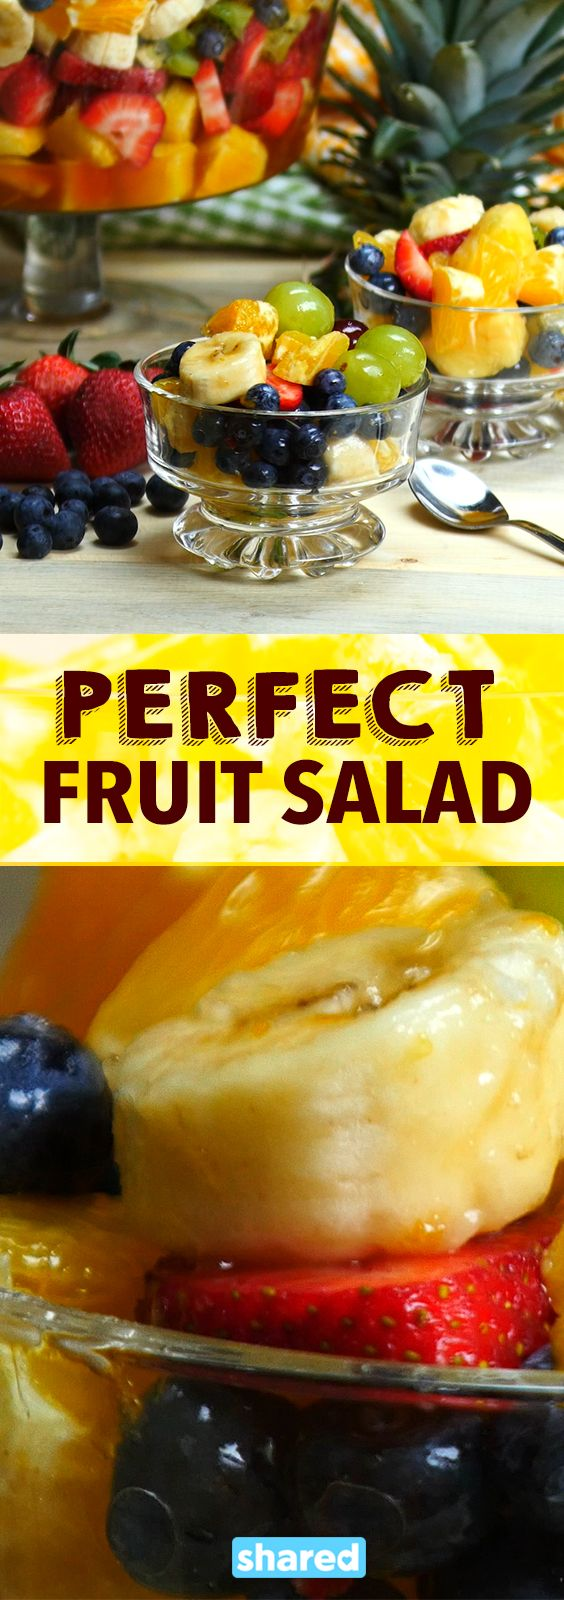 If you are trying to eat healthier, chances are you are going to want to add some fruit to your diet. You deserve to have the Perfect Fruit Salad, and this one is the best of the best!  The yummy sauce really takes the fruit to the next level. Perfect to make for lunches or potlucks, this fruit salad is such a wonderful and healthy treat!